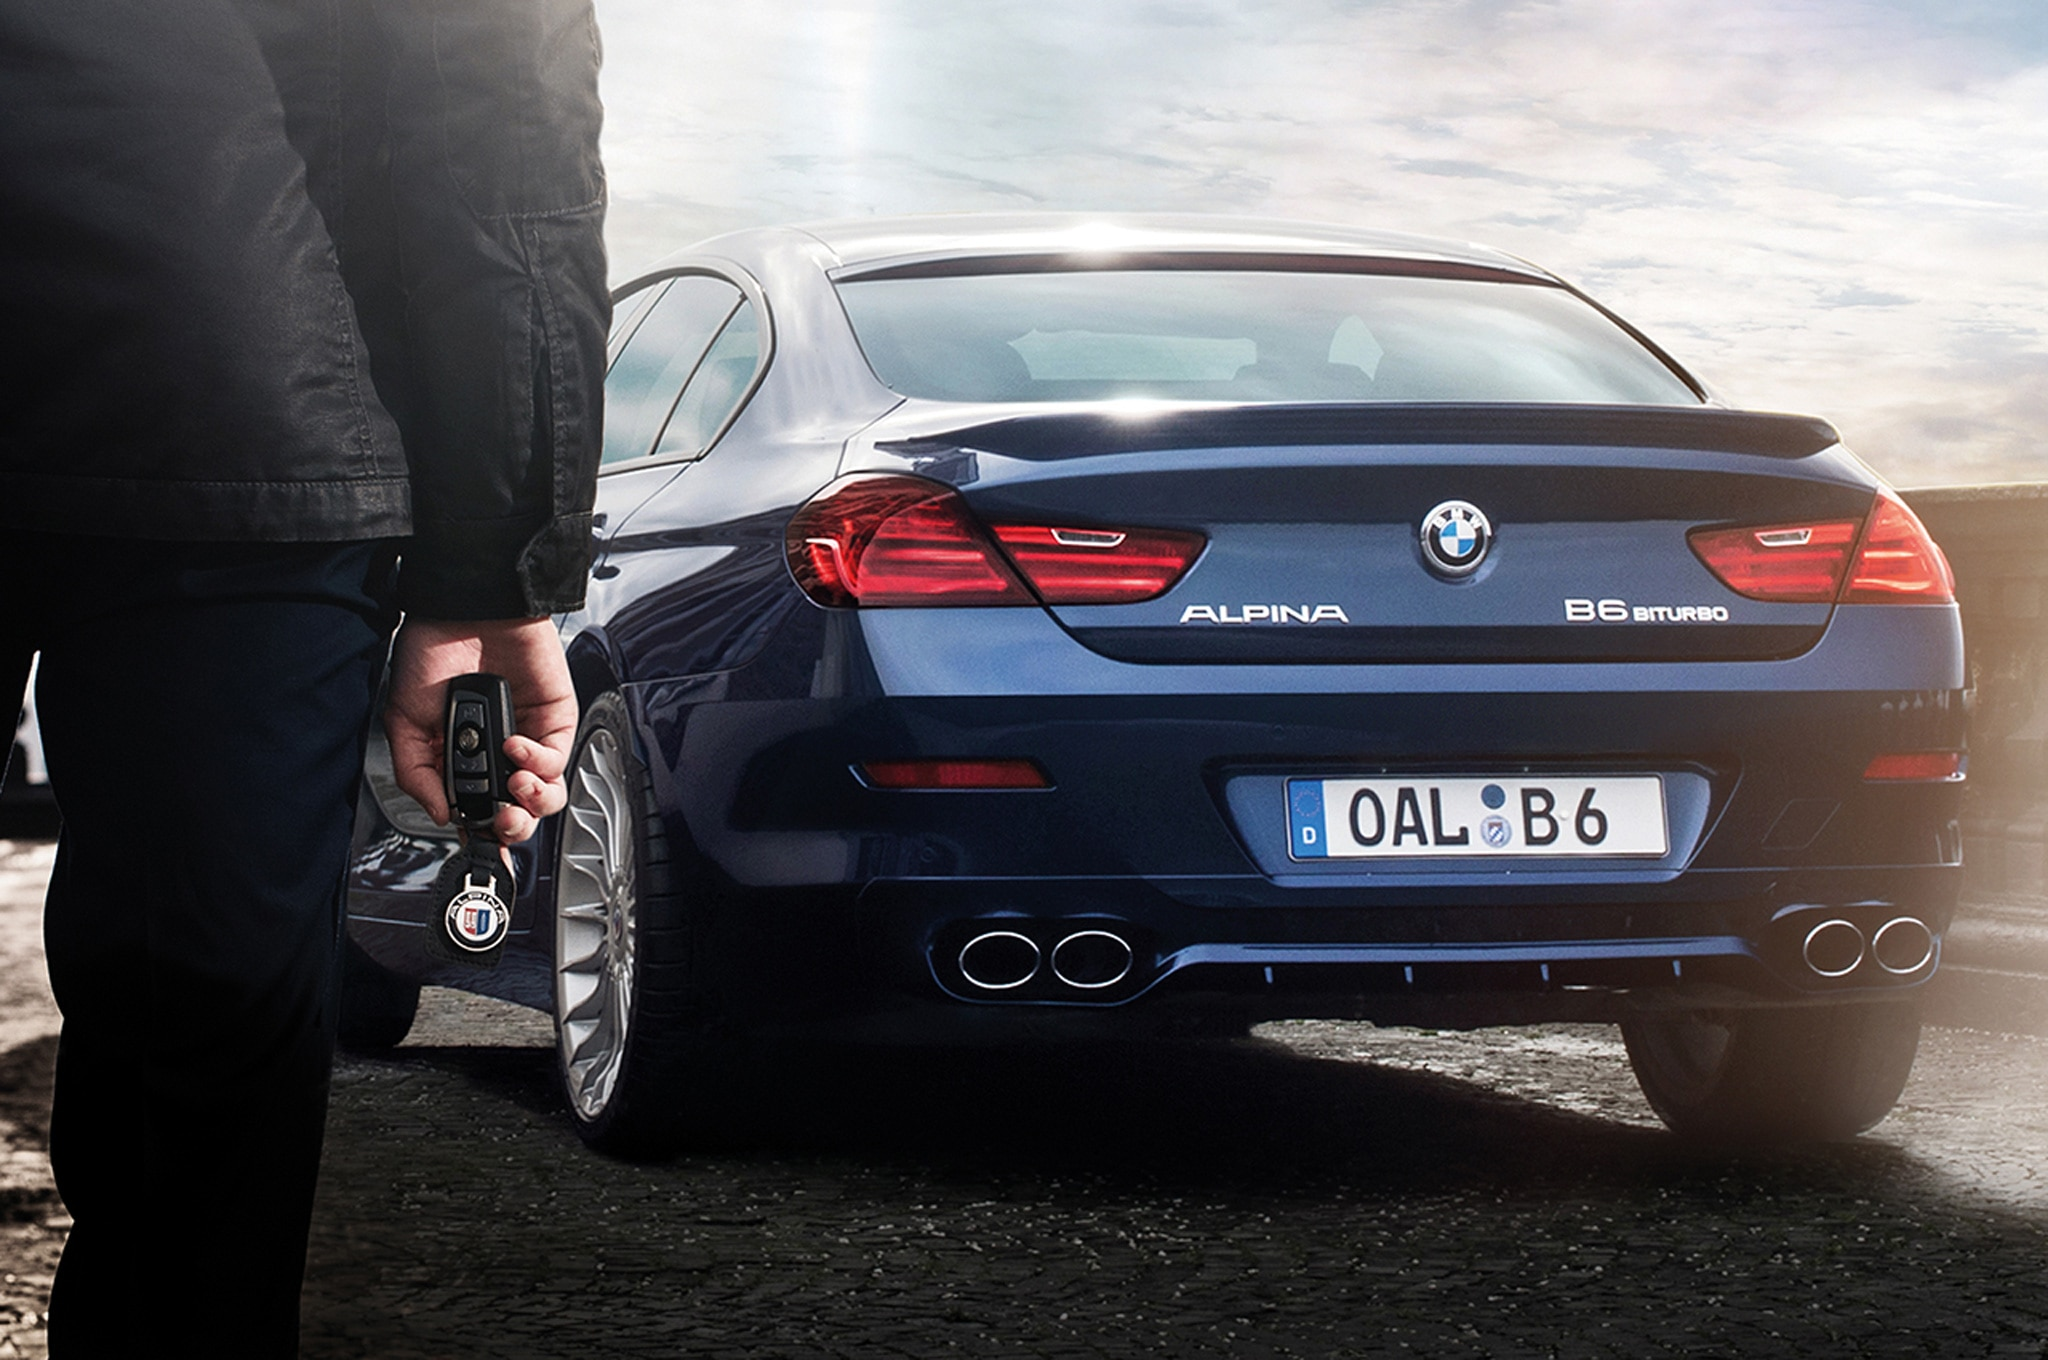 2015 bmw alpina b6 xdrive gran coupe from behind